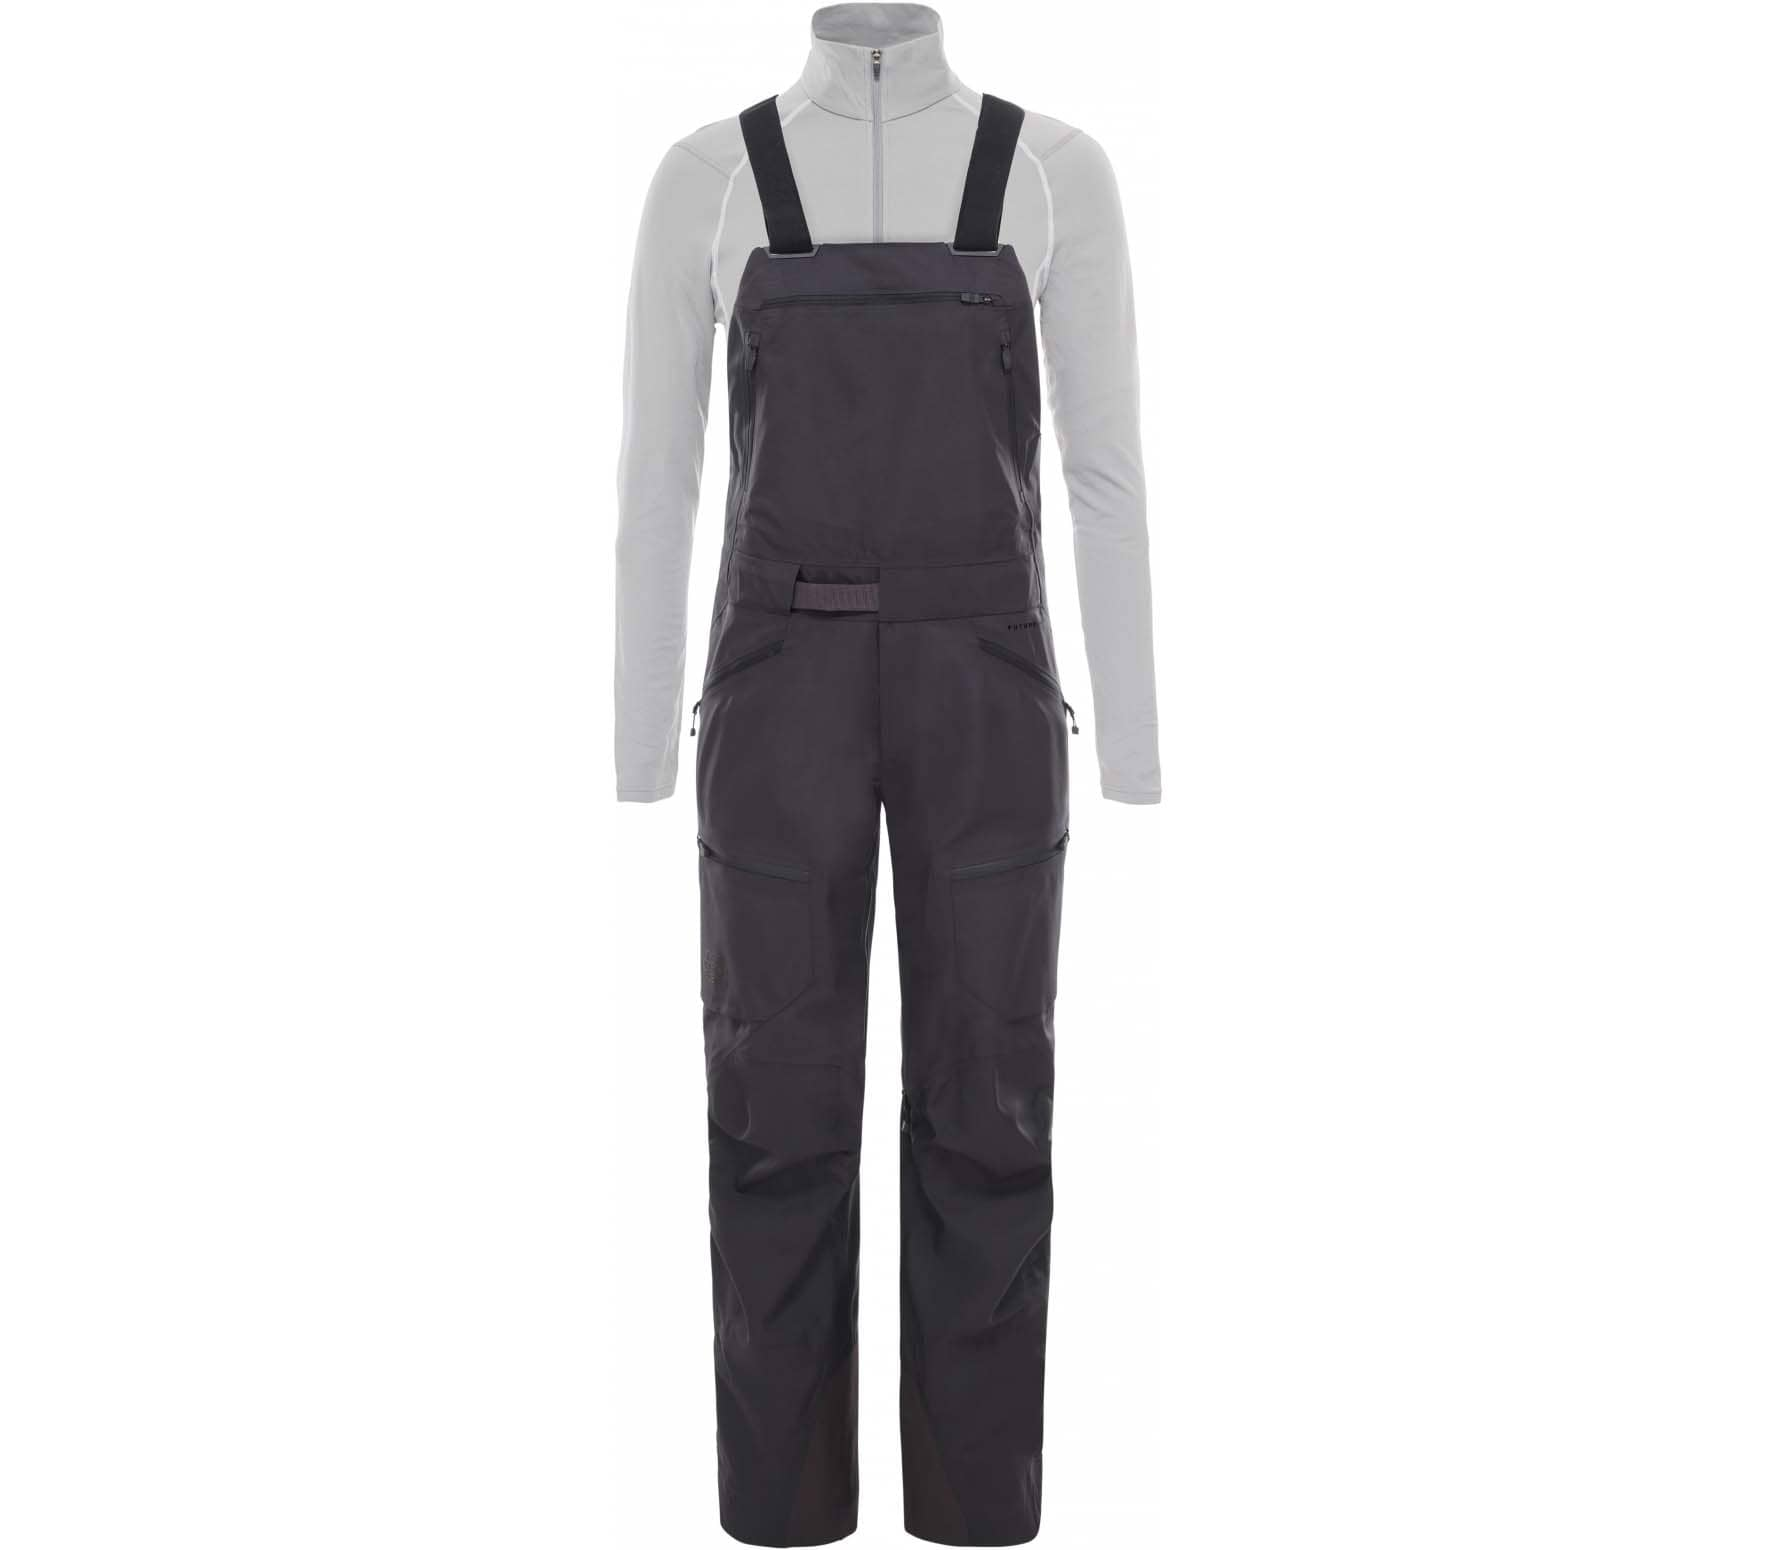 The North Face Brigandine BIB Damen Skihose (schwarz) 616,90 €